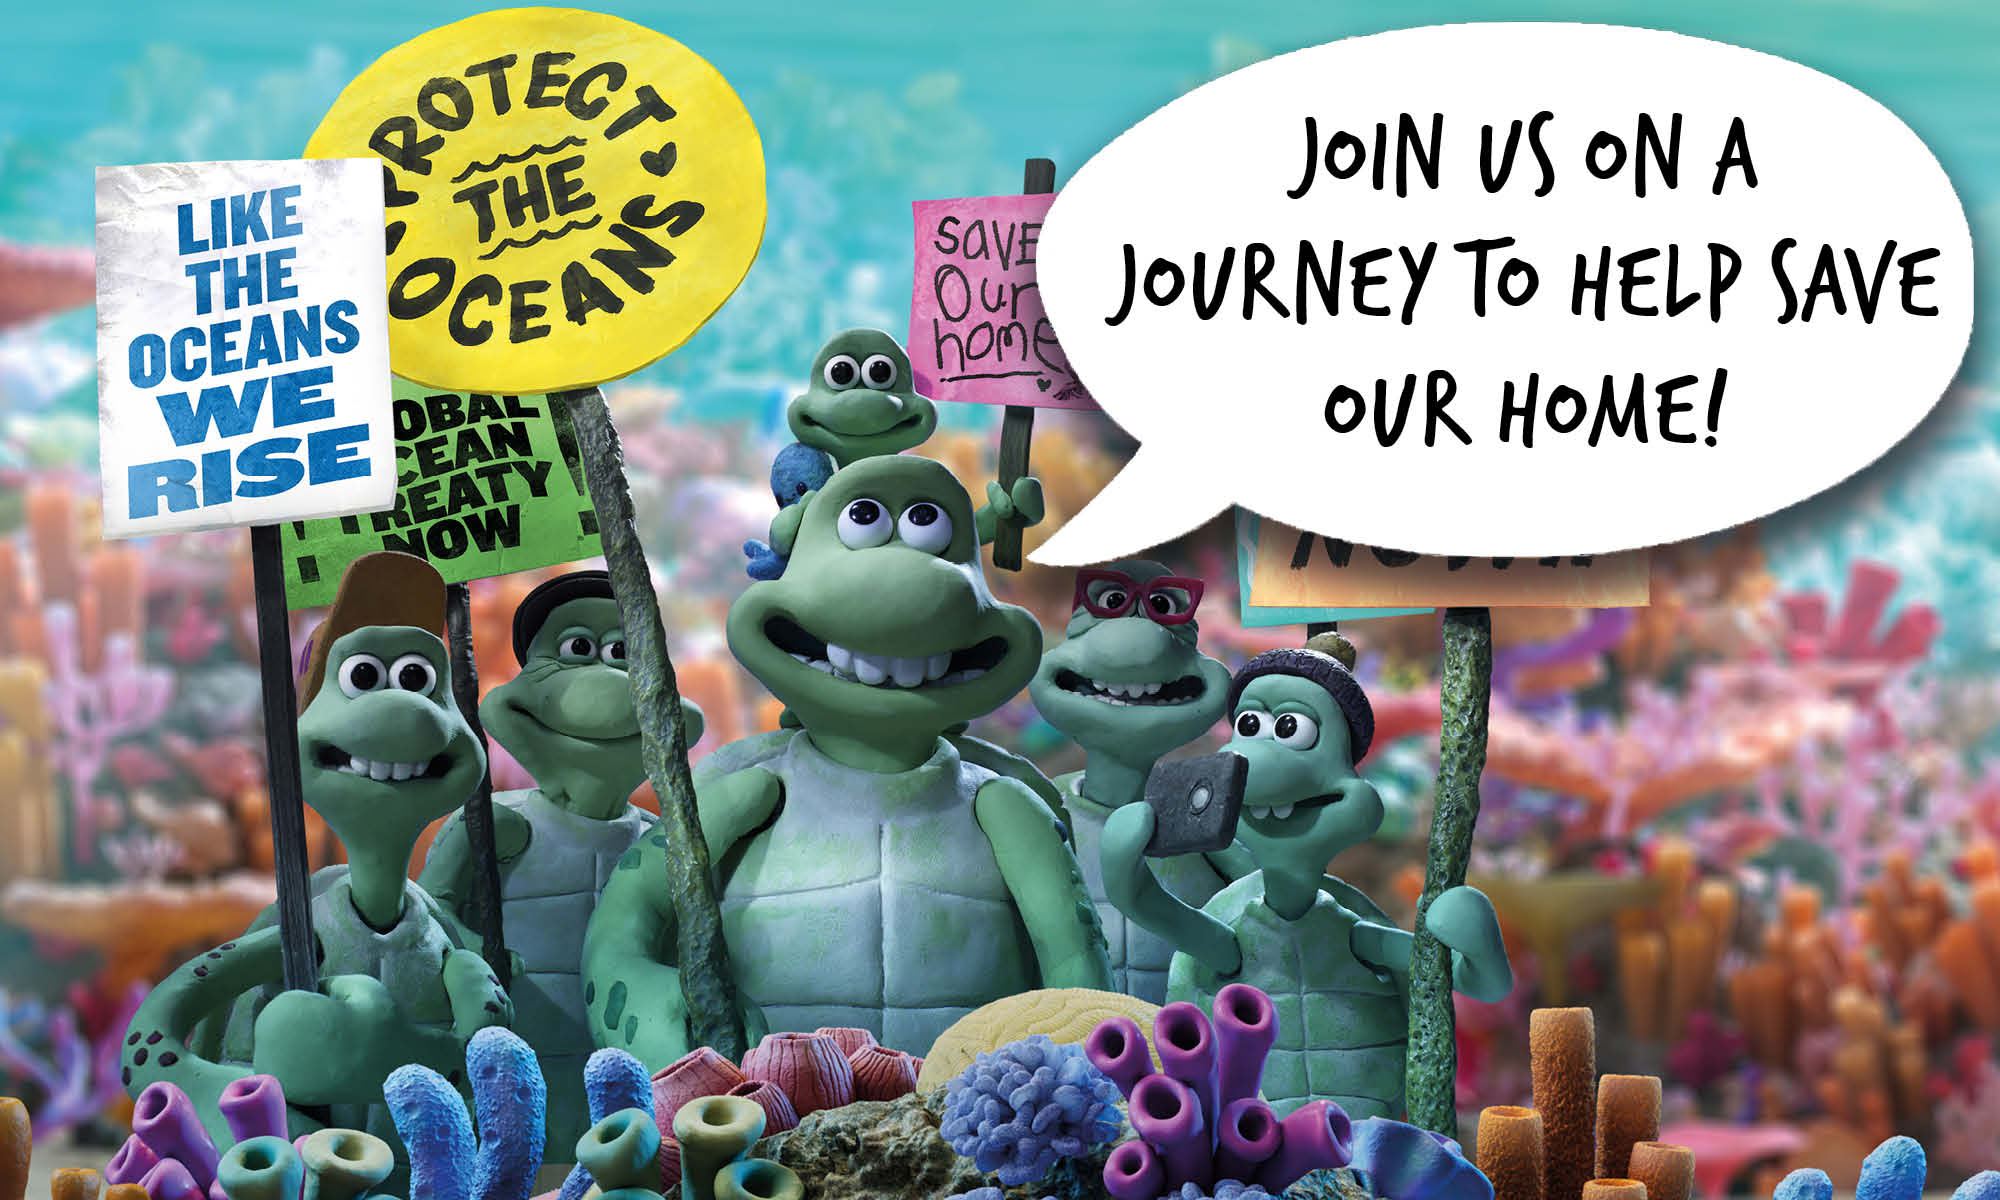 The family of cartoon sea turtles stand together holding placards with ocean protection slogans. Speech bubble reads 'Join us on a journey to help save our home'